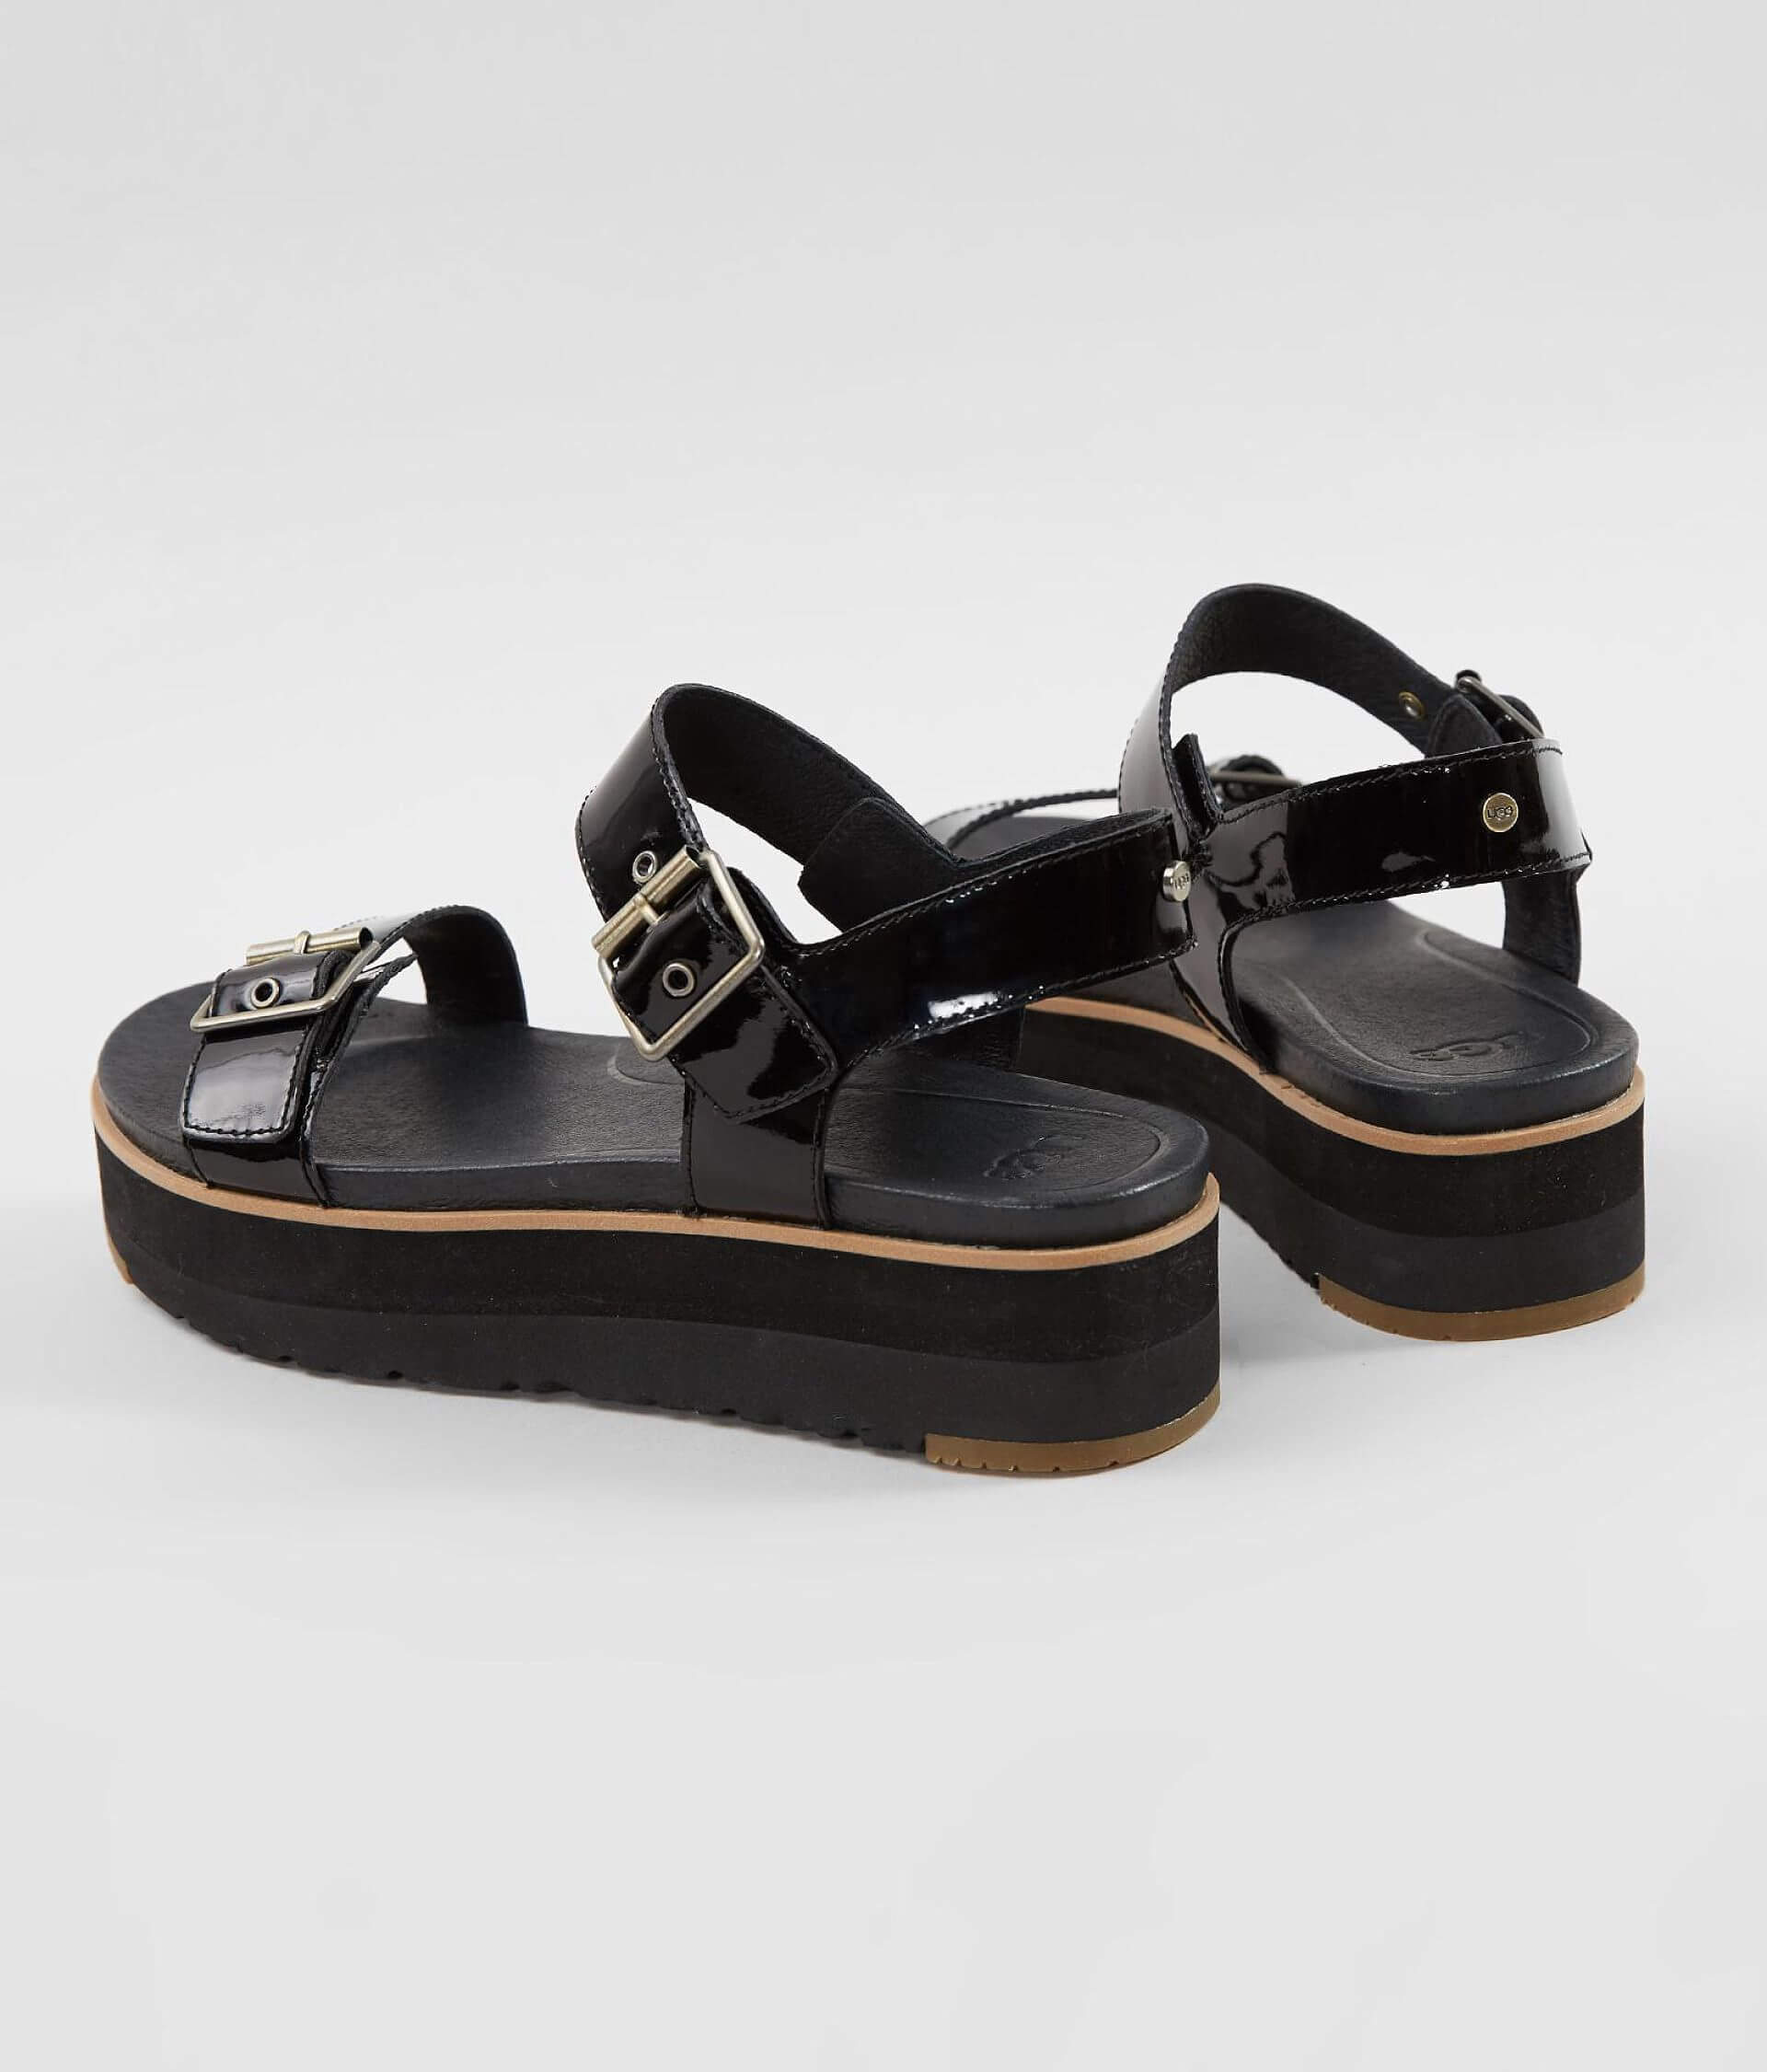 0454cceaf2d UGG® Angie Leather Sandal - Women's Shoes in Black | Buckle